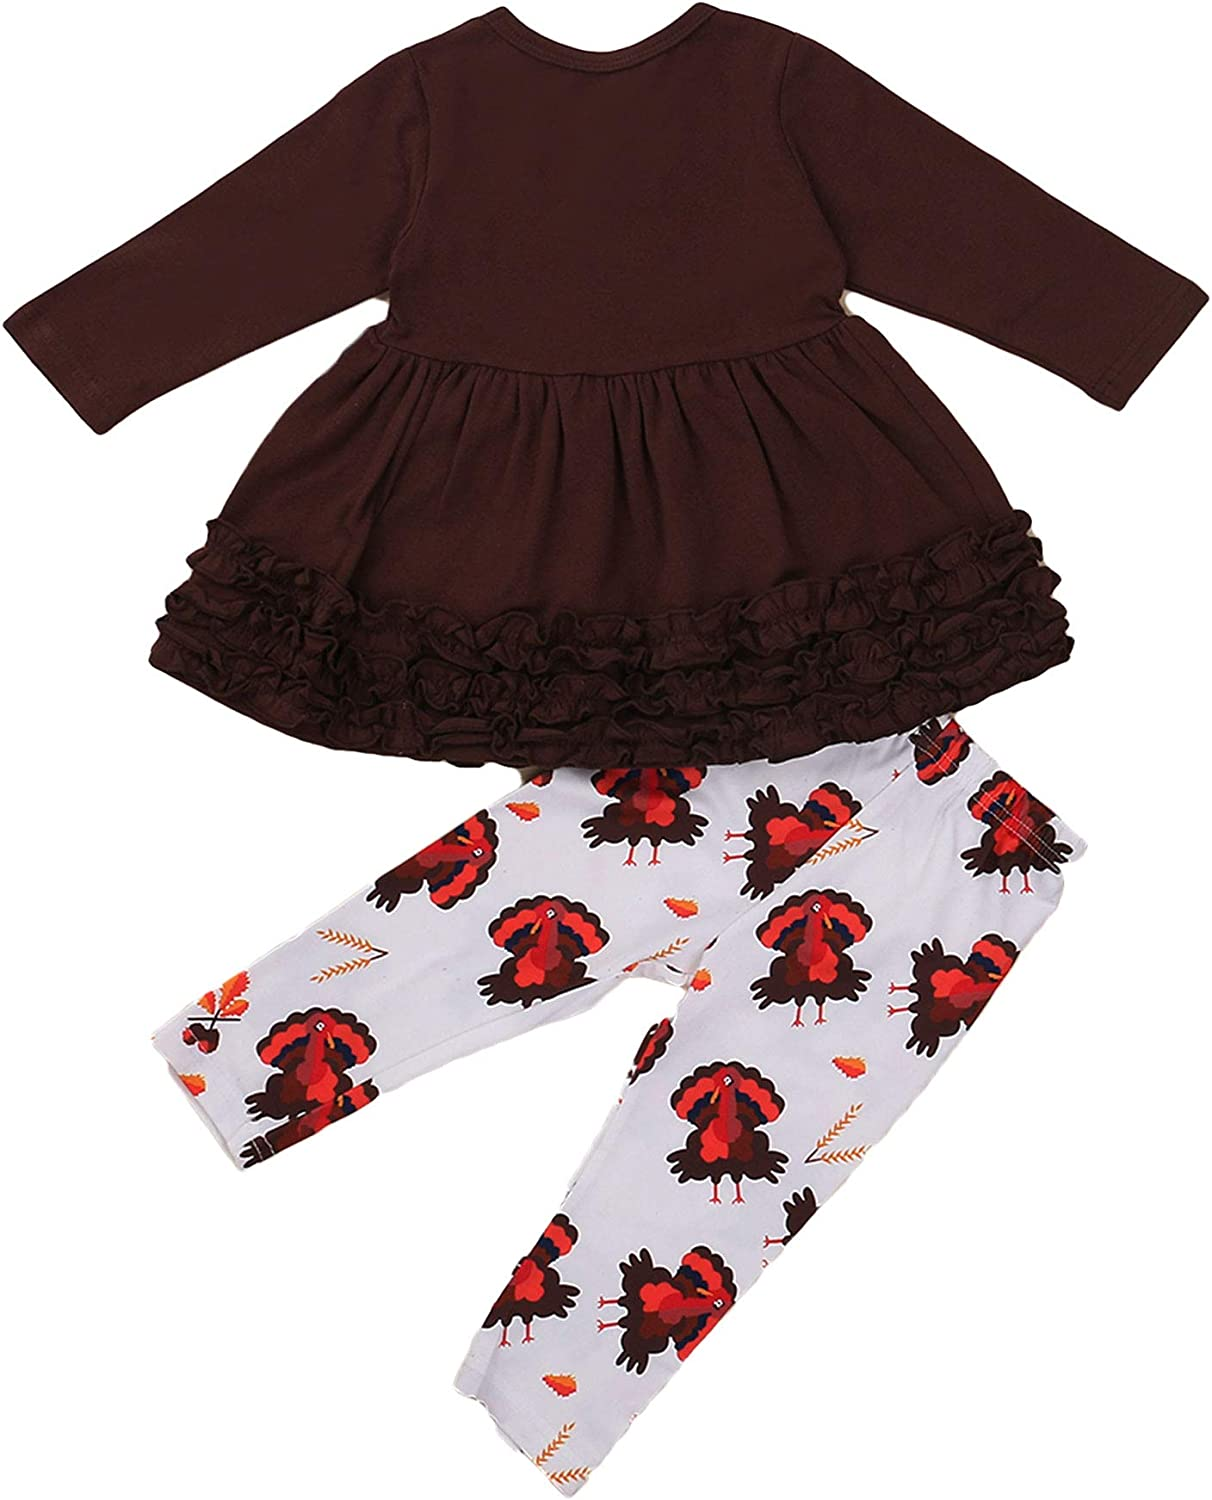 Toddler Baby Girl Clothes Long Sleeve Ruffle Flare Tunic Tops Leggings Pants Spring Clothes Set